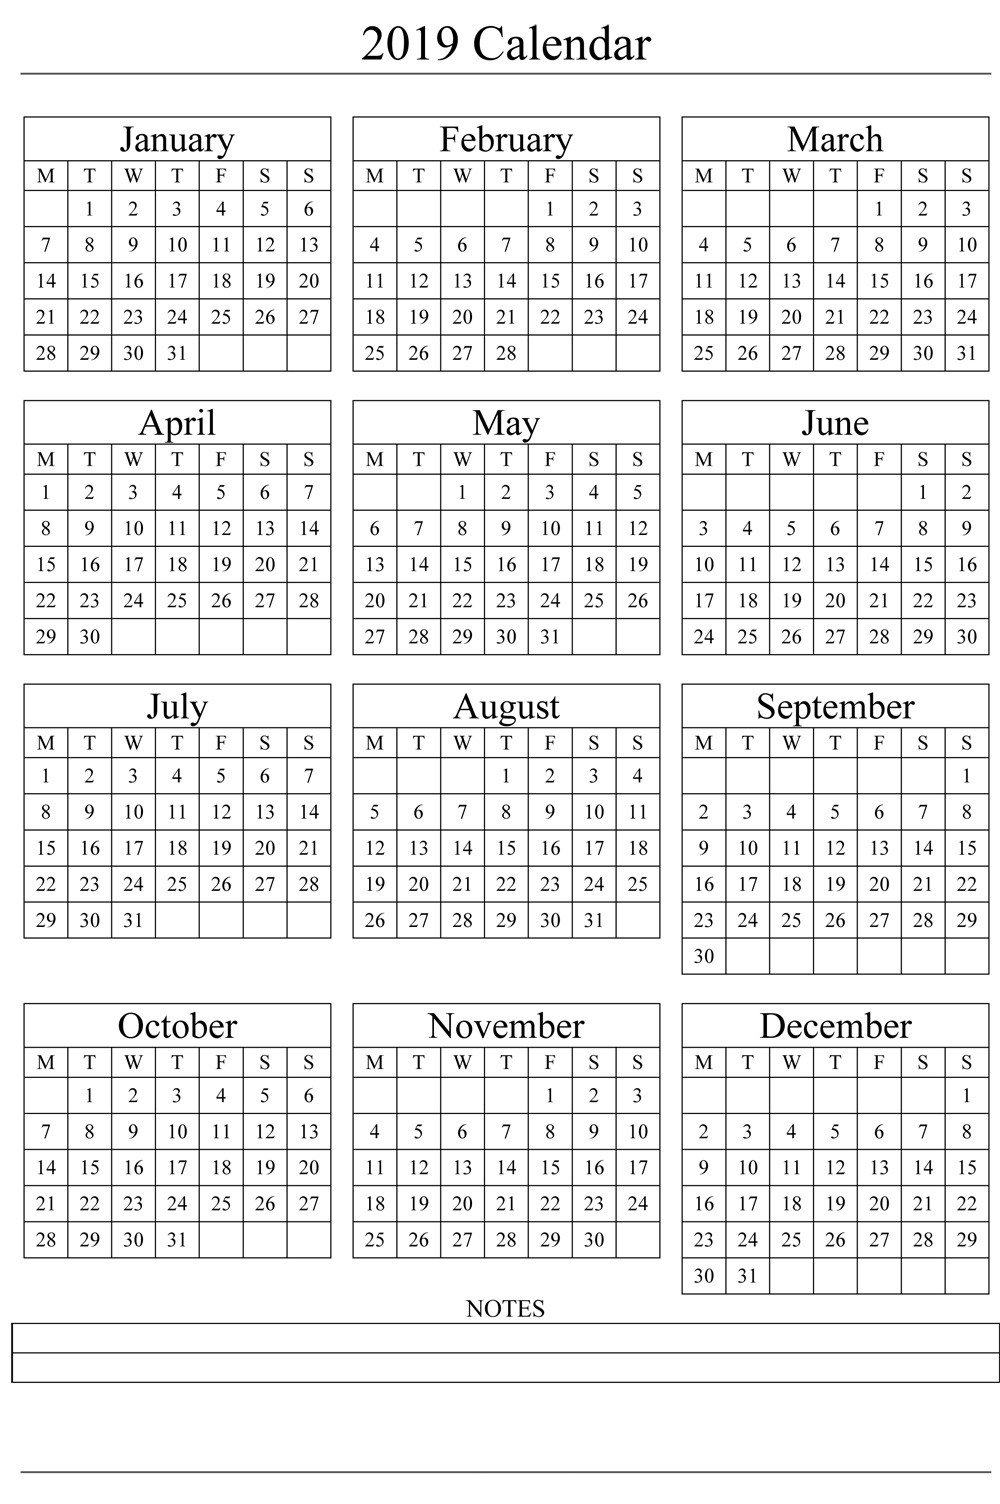 2019 Printable Calendar Templates - Blank Word Pdf - Calendar End Calendar Of 2019 Pdf